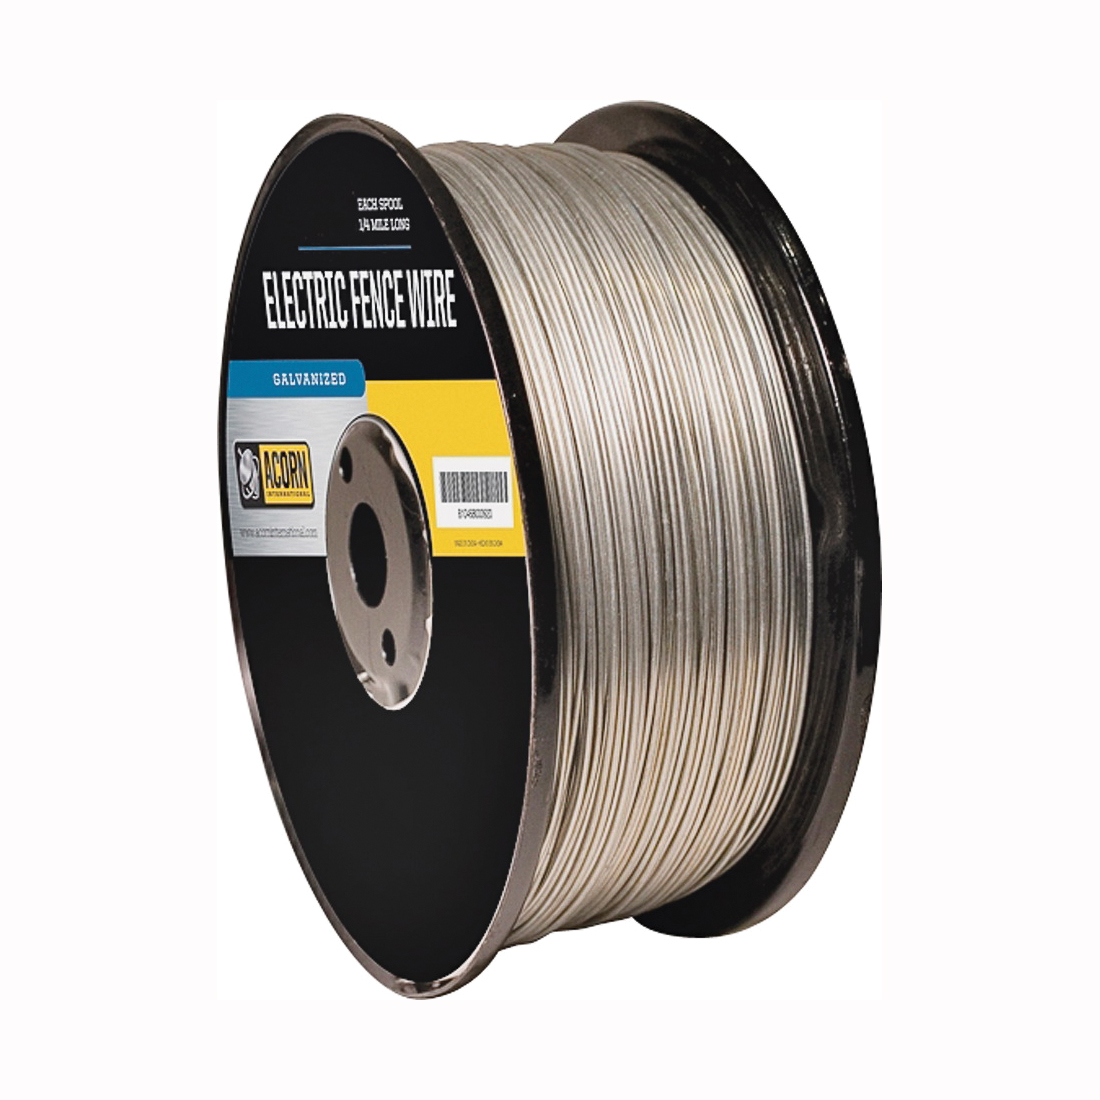 Picture of Acorn International EFW1712 Electric Fence Wire, 17 ga Wire, Metal Conductor, 1/2 mile L